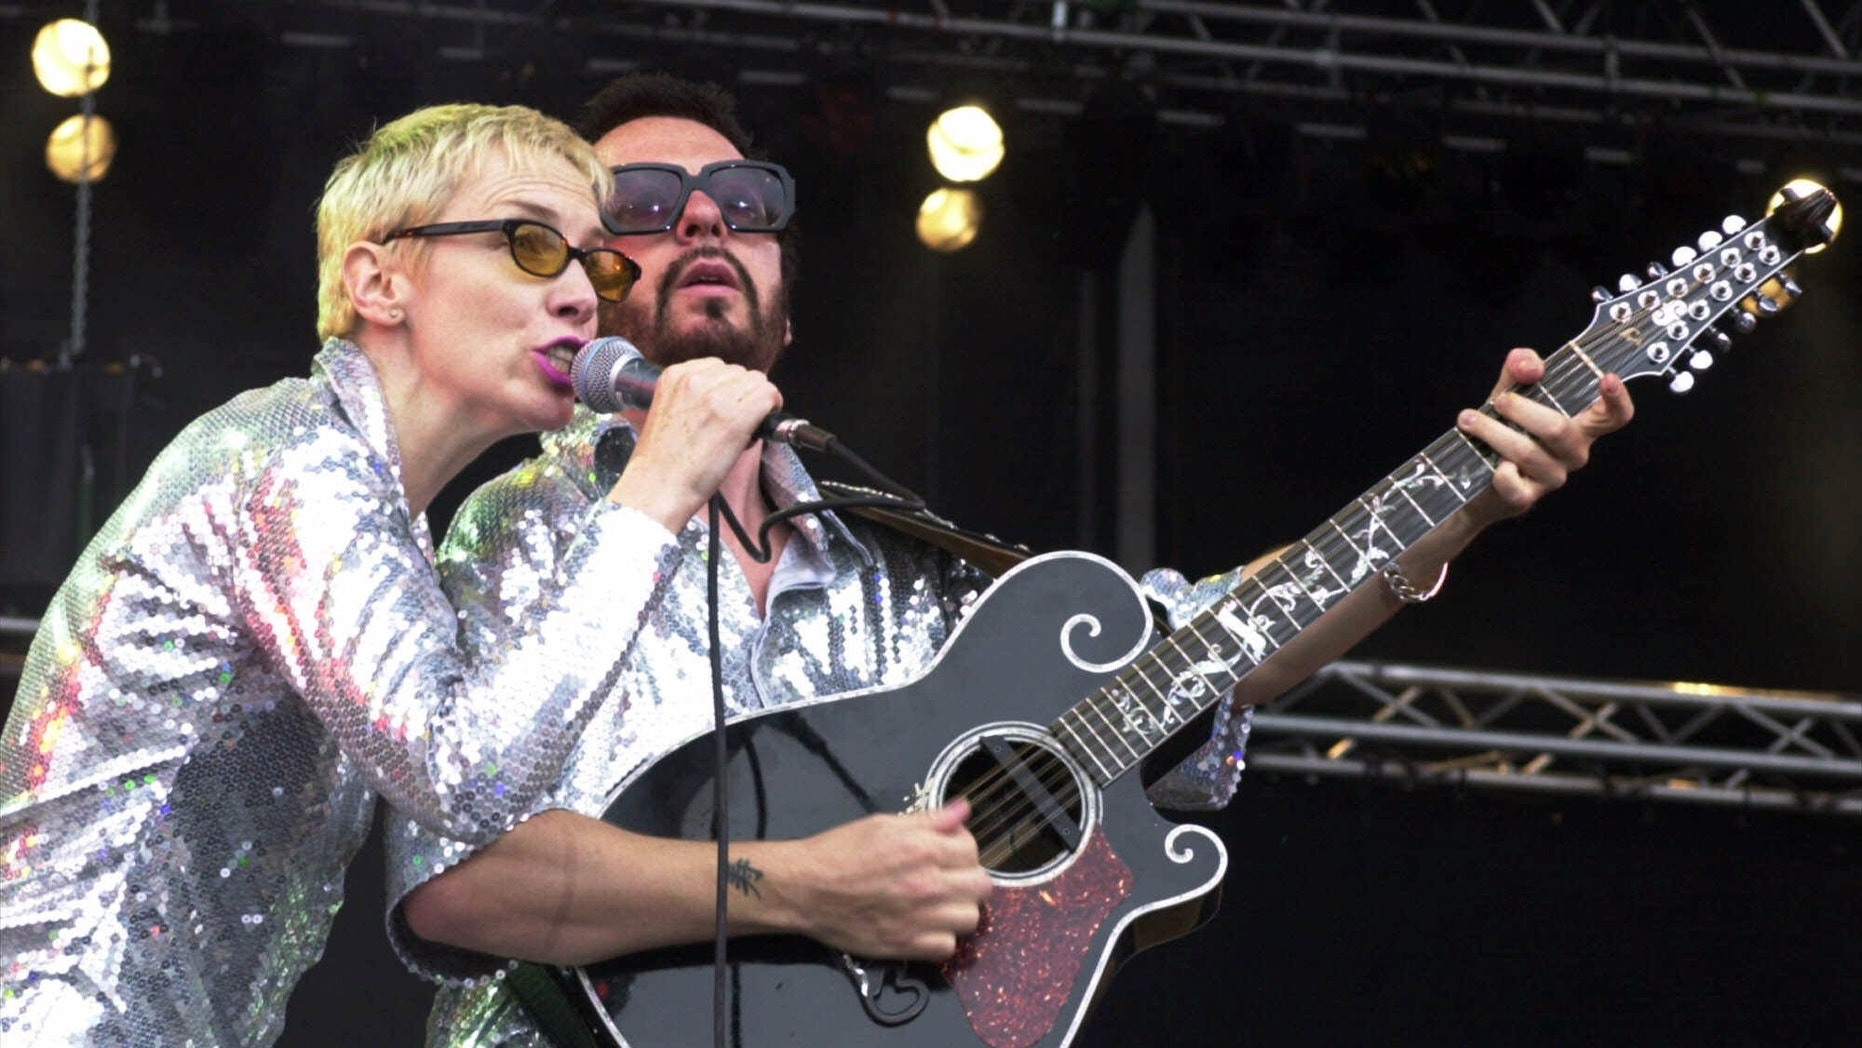 "File- This June 10, 2000, file photo shows Annie Lennox, left, and Dave Stewart as the Eurythmics performing on stage at the Rock at the Ring three-day music festival at the Nuerburgring race circuit in Nuerburg, Germany.  The Eurythmics are reuniting to pay tribute to the Beatles. The Recording Academy announced Monday Jan. 6, 2014, that  Lennox and Stewart will perform as a duo for ""The Night That Changed America: A Grammy Salute To The Beatles."" The event will tape at the Los Angeles Convention Center on Jan. 27, a day after the Grammy Awards. (AP Photo/Pool)"